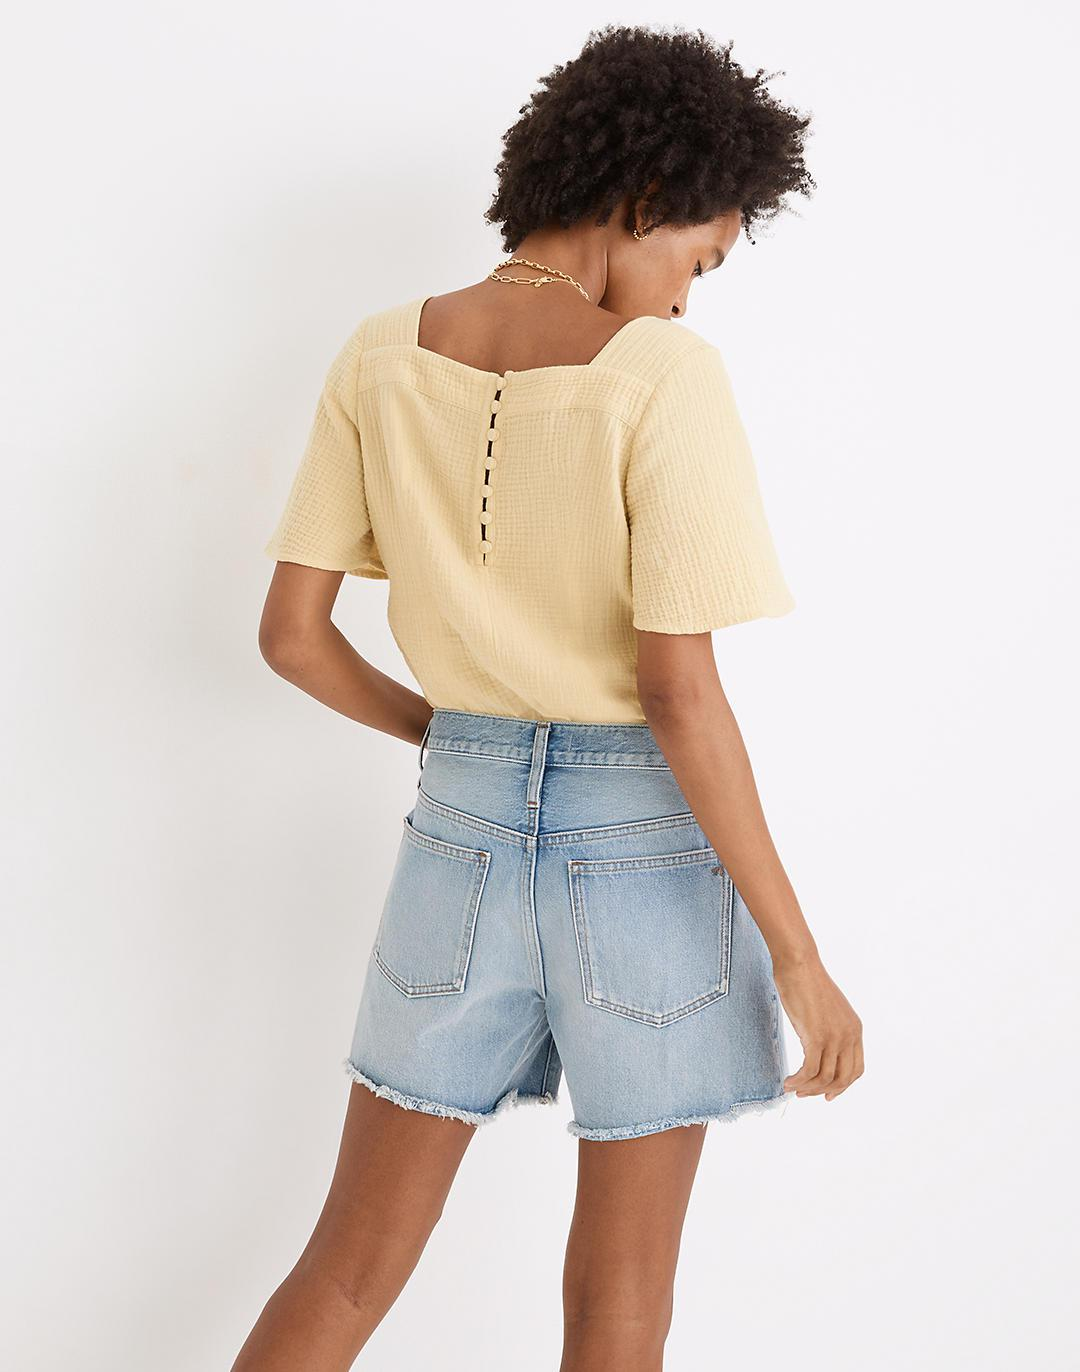 Relaxed Mid-Length Denim Shorts in Selton Wash: Ripped Edition 2